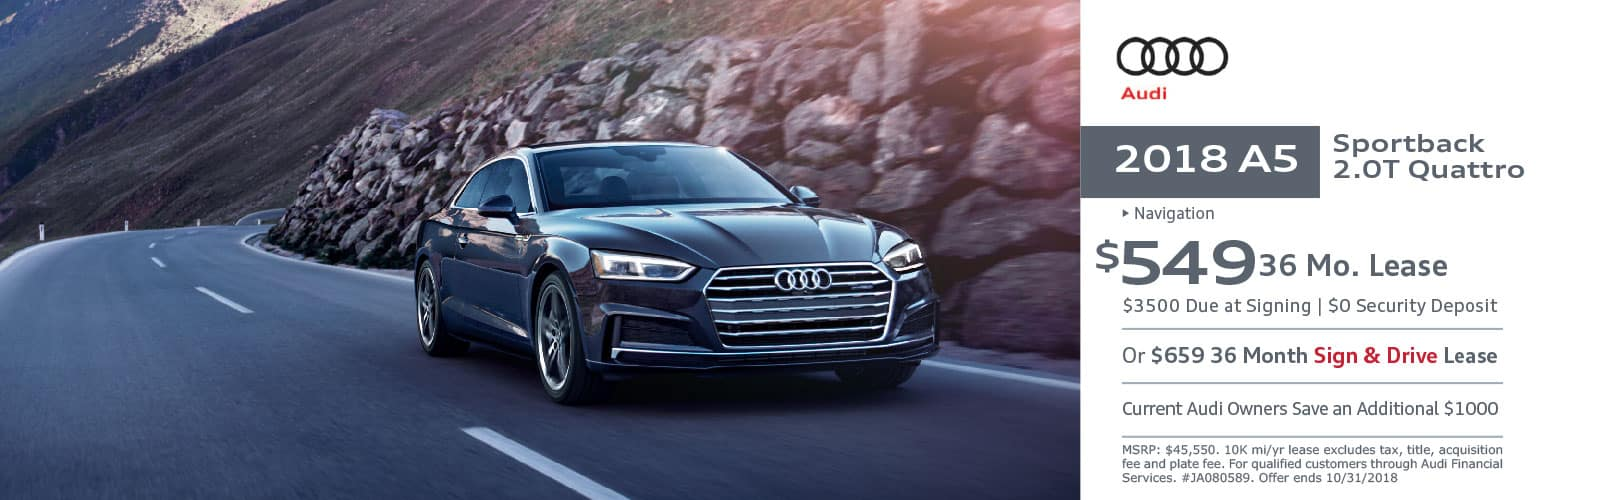 Audi Lease Deals Washington New Car Lease Specials Pittsburgh - Audi pittsburgh